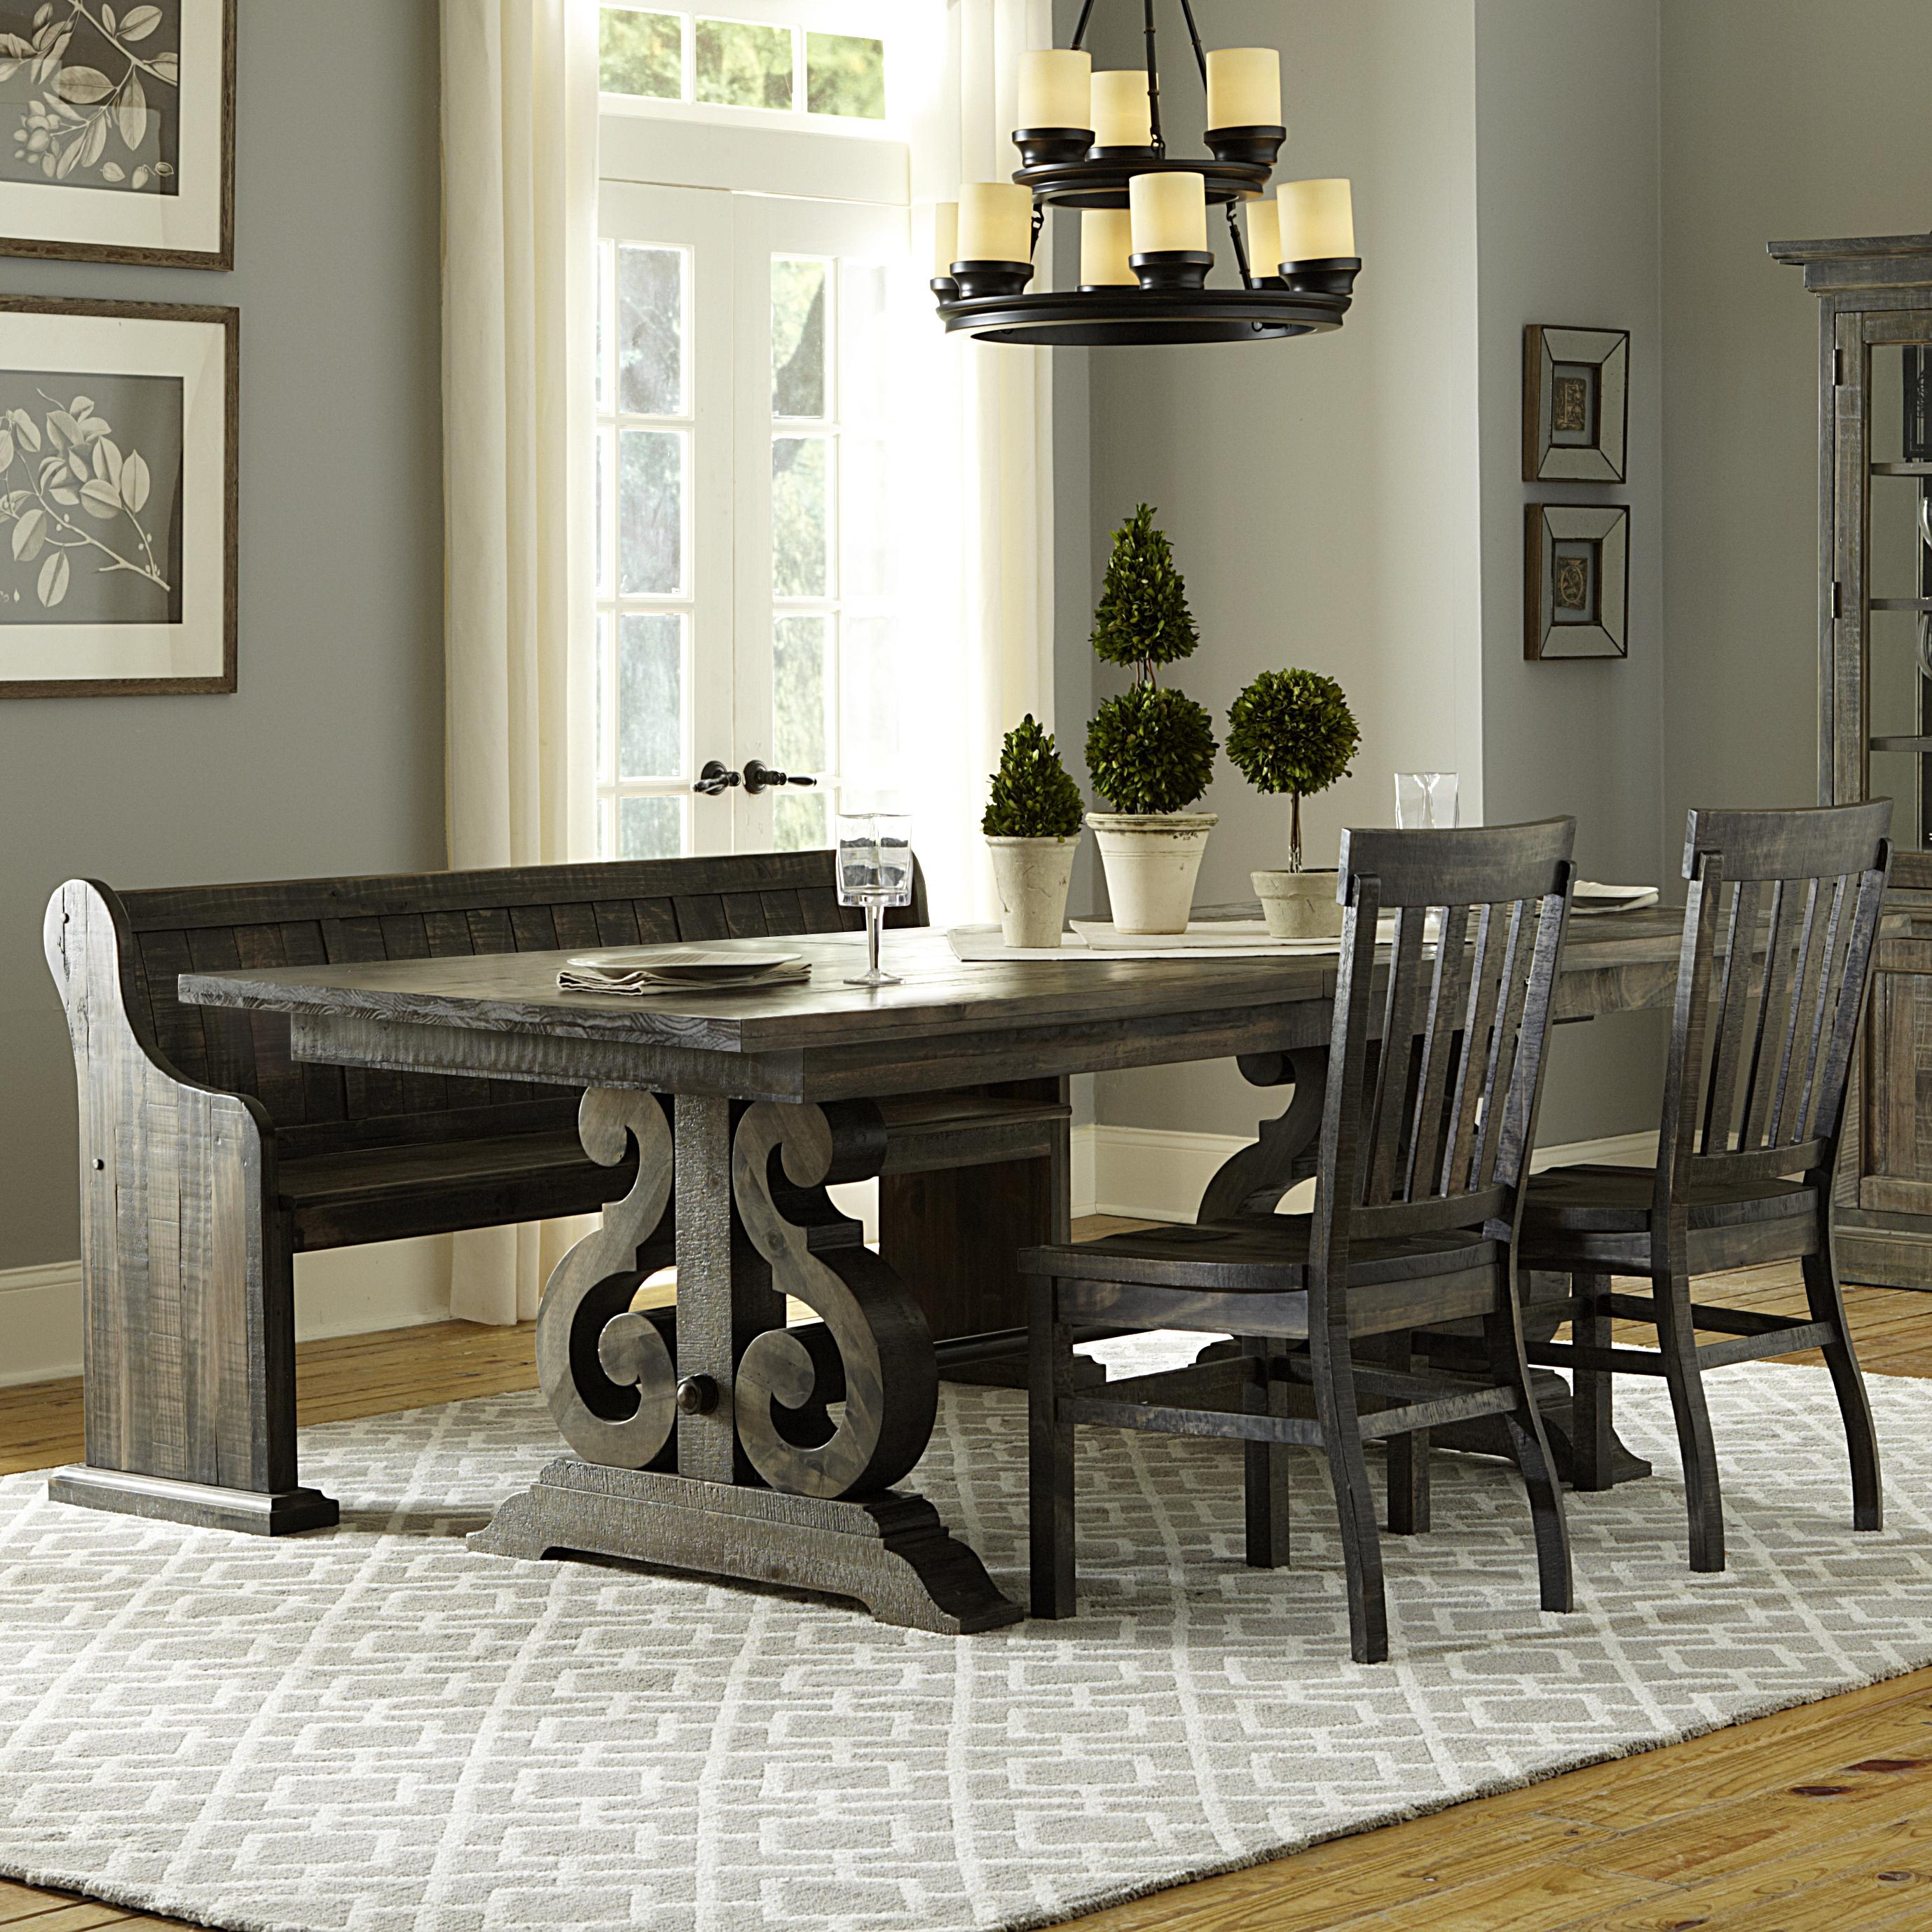 magnussen home bellamy 4 pc dining set item number d2491 202x60 - Dining Room Table With Chairs And Bench